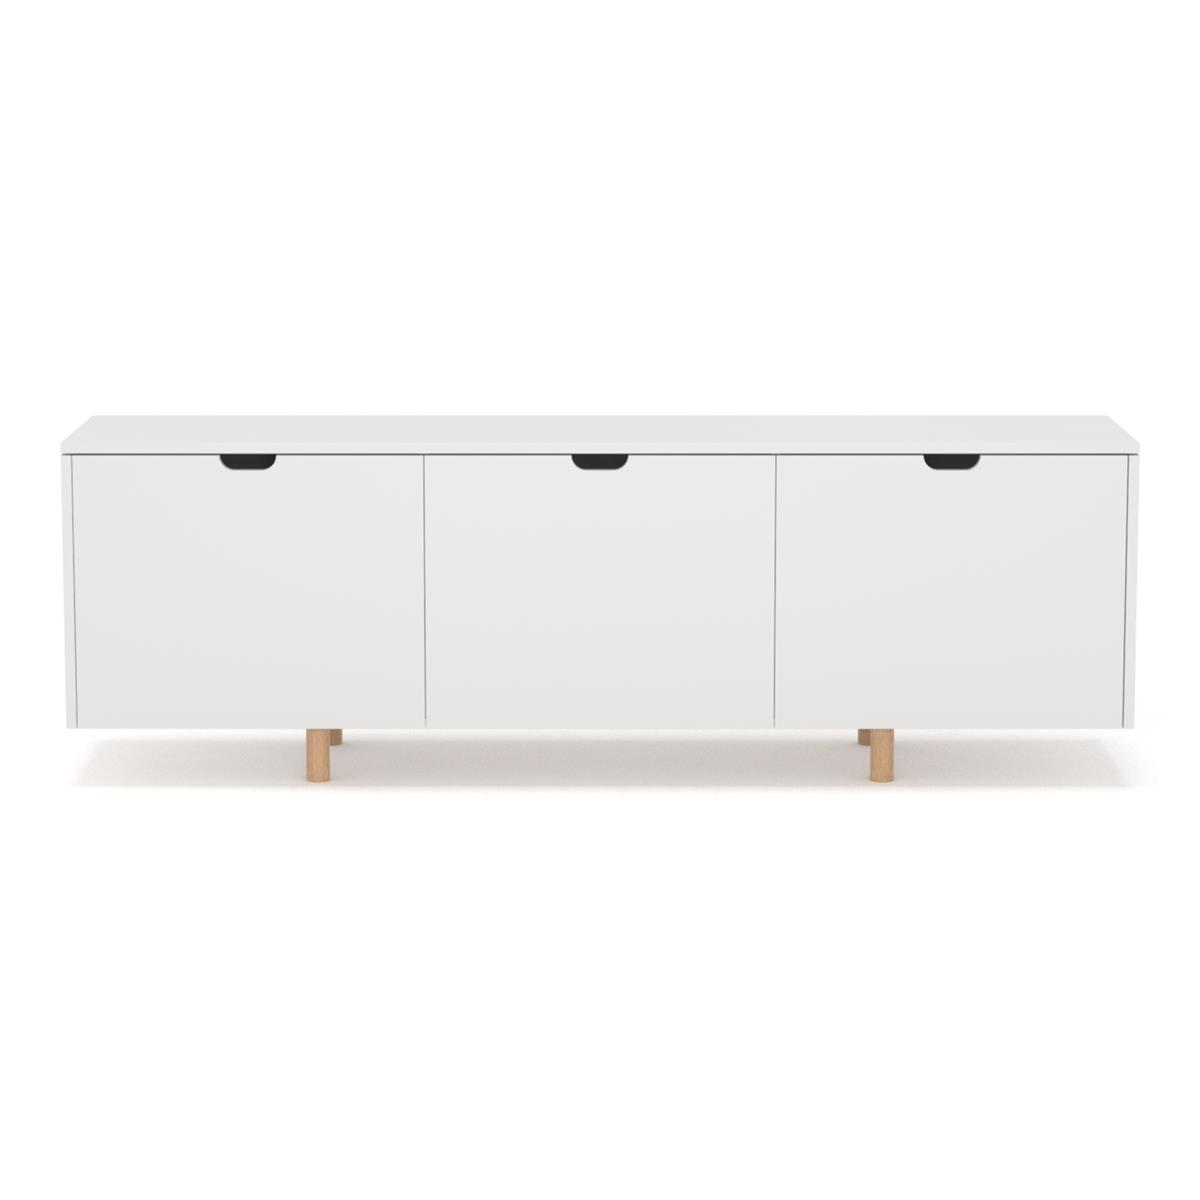 O3 Floating Sideboard - hvit & eik ben